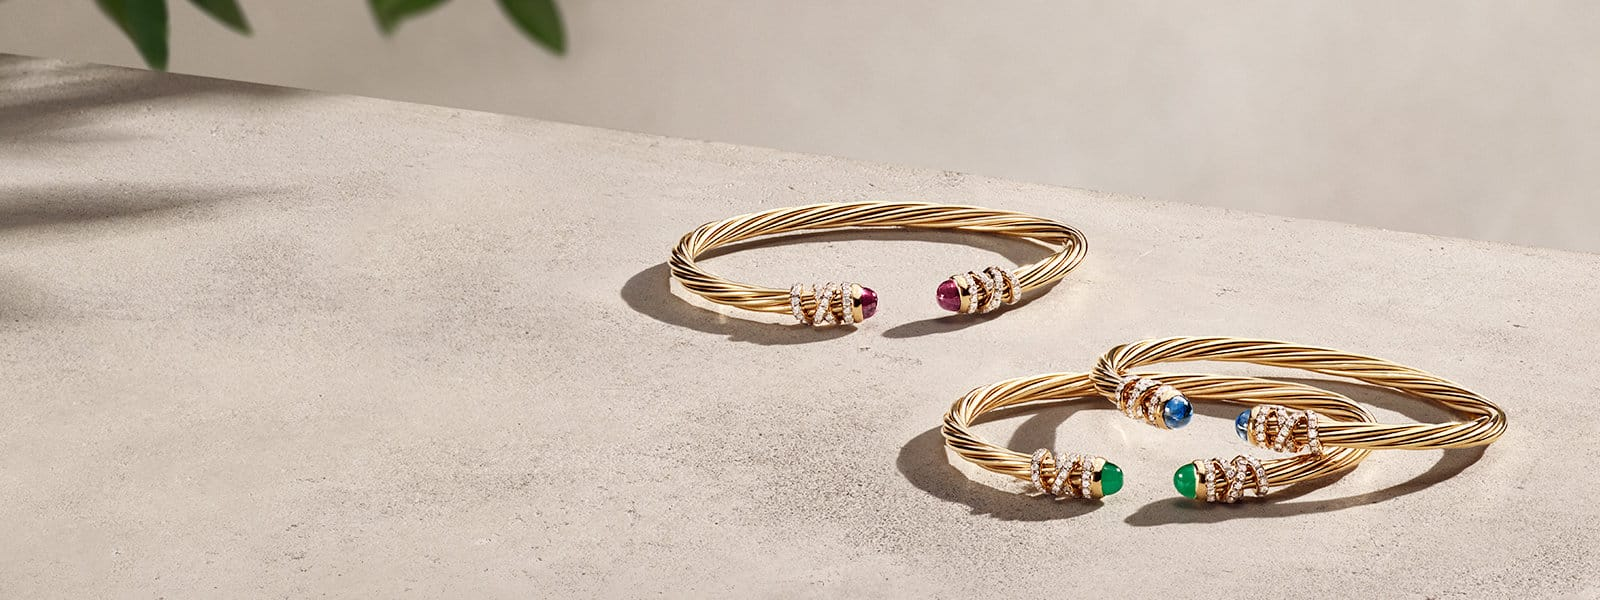 Three David Yurman Helena bracelets in 18K yellow gold with pavé diamond threads and colored gemstone end caps—all scattered on a light pink stone background with shadows in one corner.